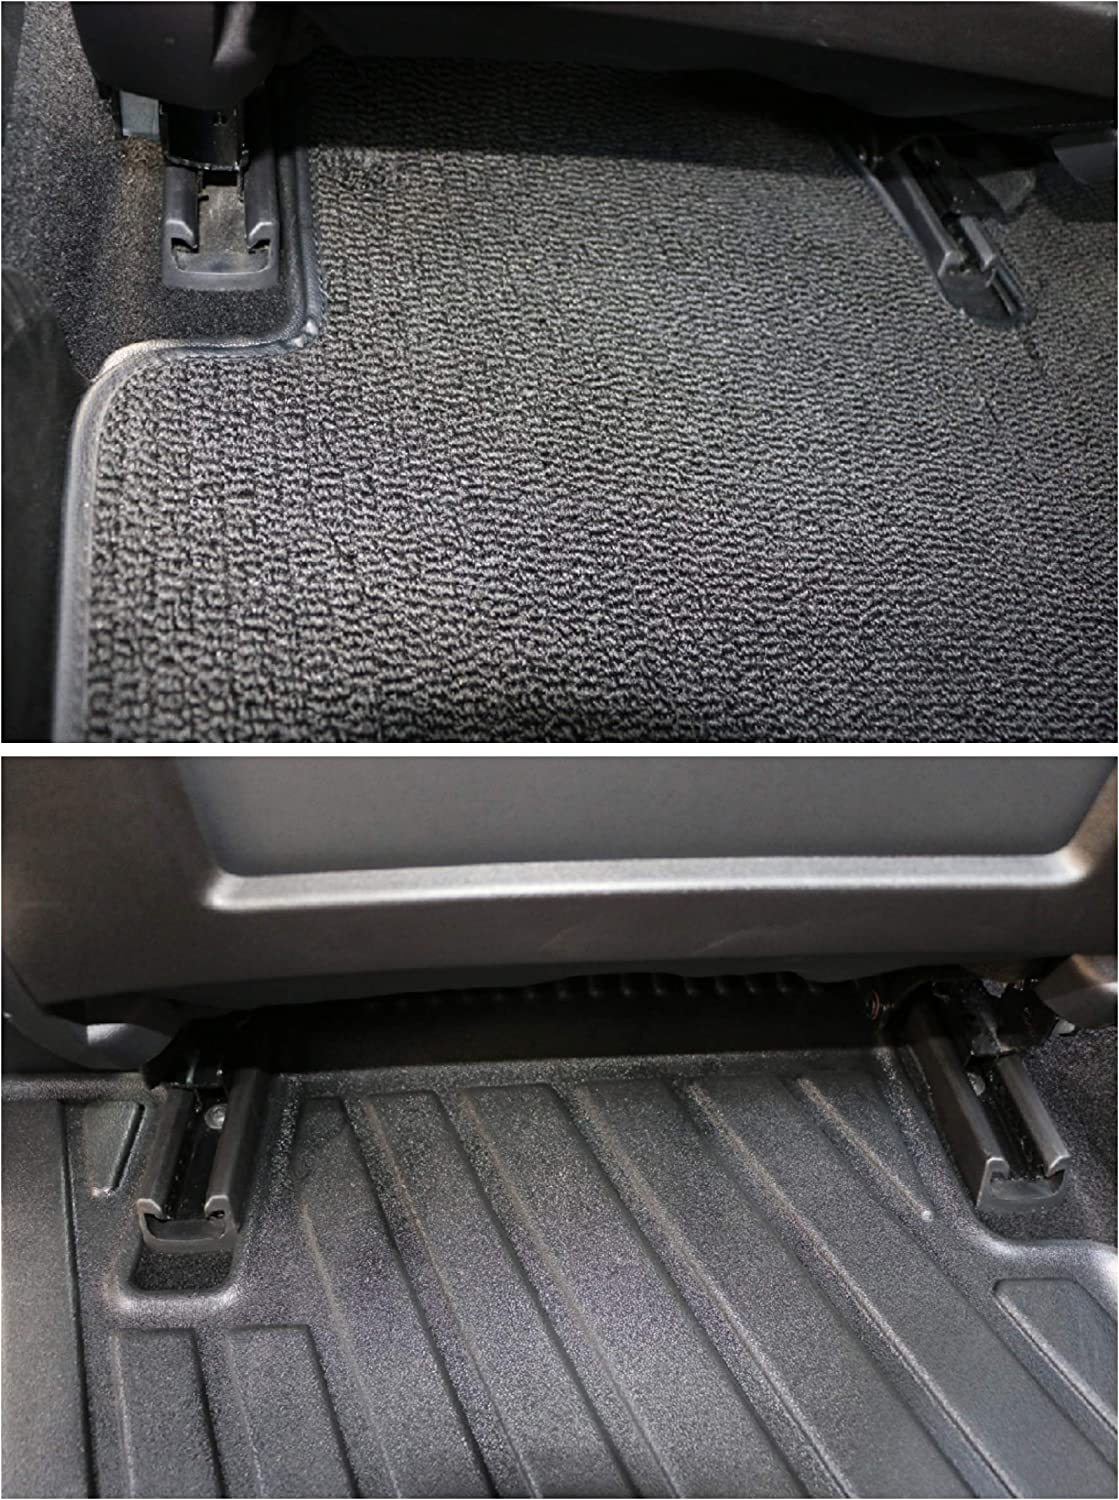 EXCEL LIFE All Weather Full Set of TPE Floor Mats with Detachable Stain-Resistant Carpet for Tesla Model 3 Flexible /& Eco-Friendly Waterproof Suitable for Urban//Off-Road Driving